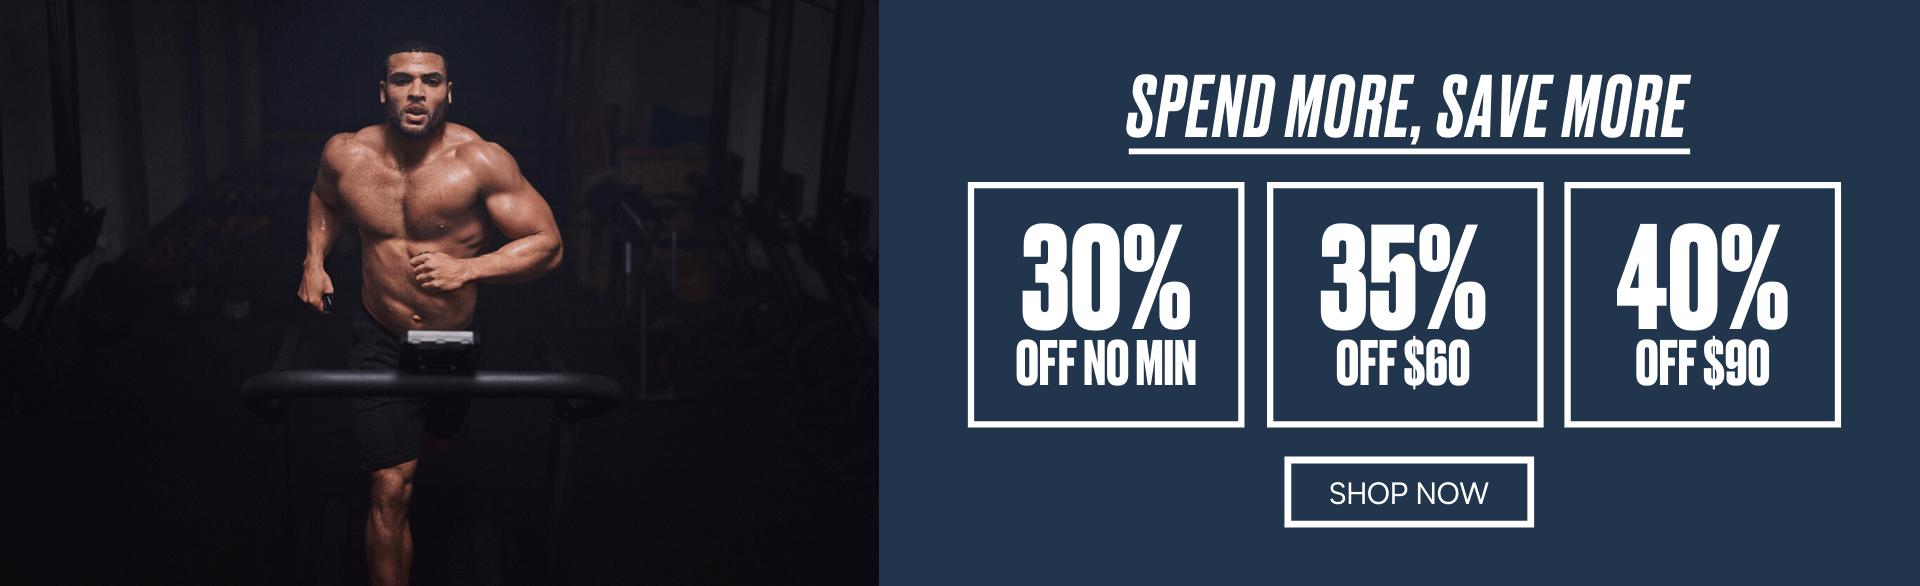 Spend More, Save More. Up to 40% off.